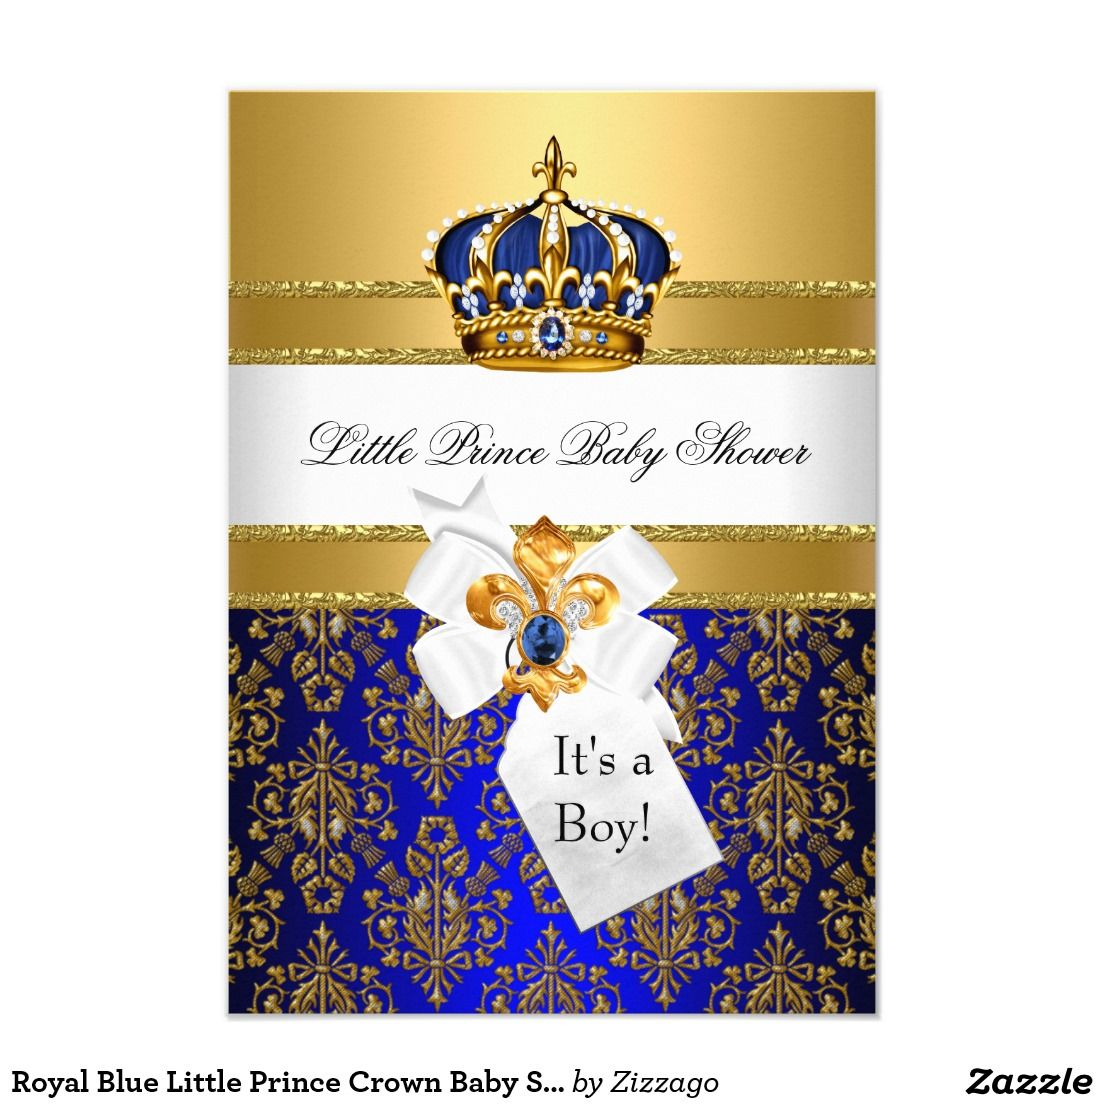 royal blue little prince crown baby shower invite | prince crown, Baby shower invitations